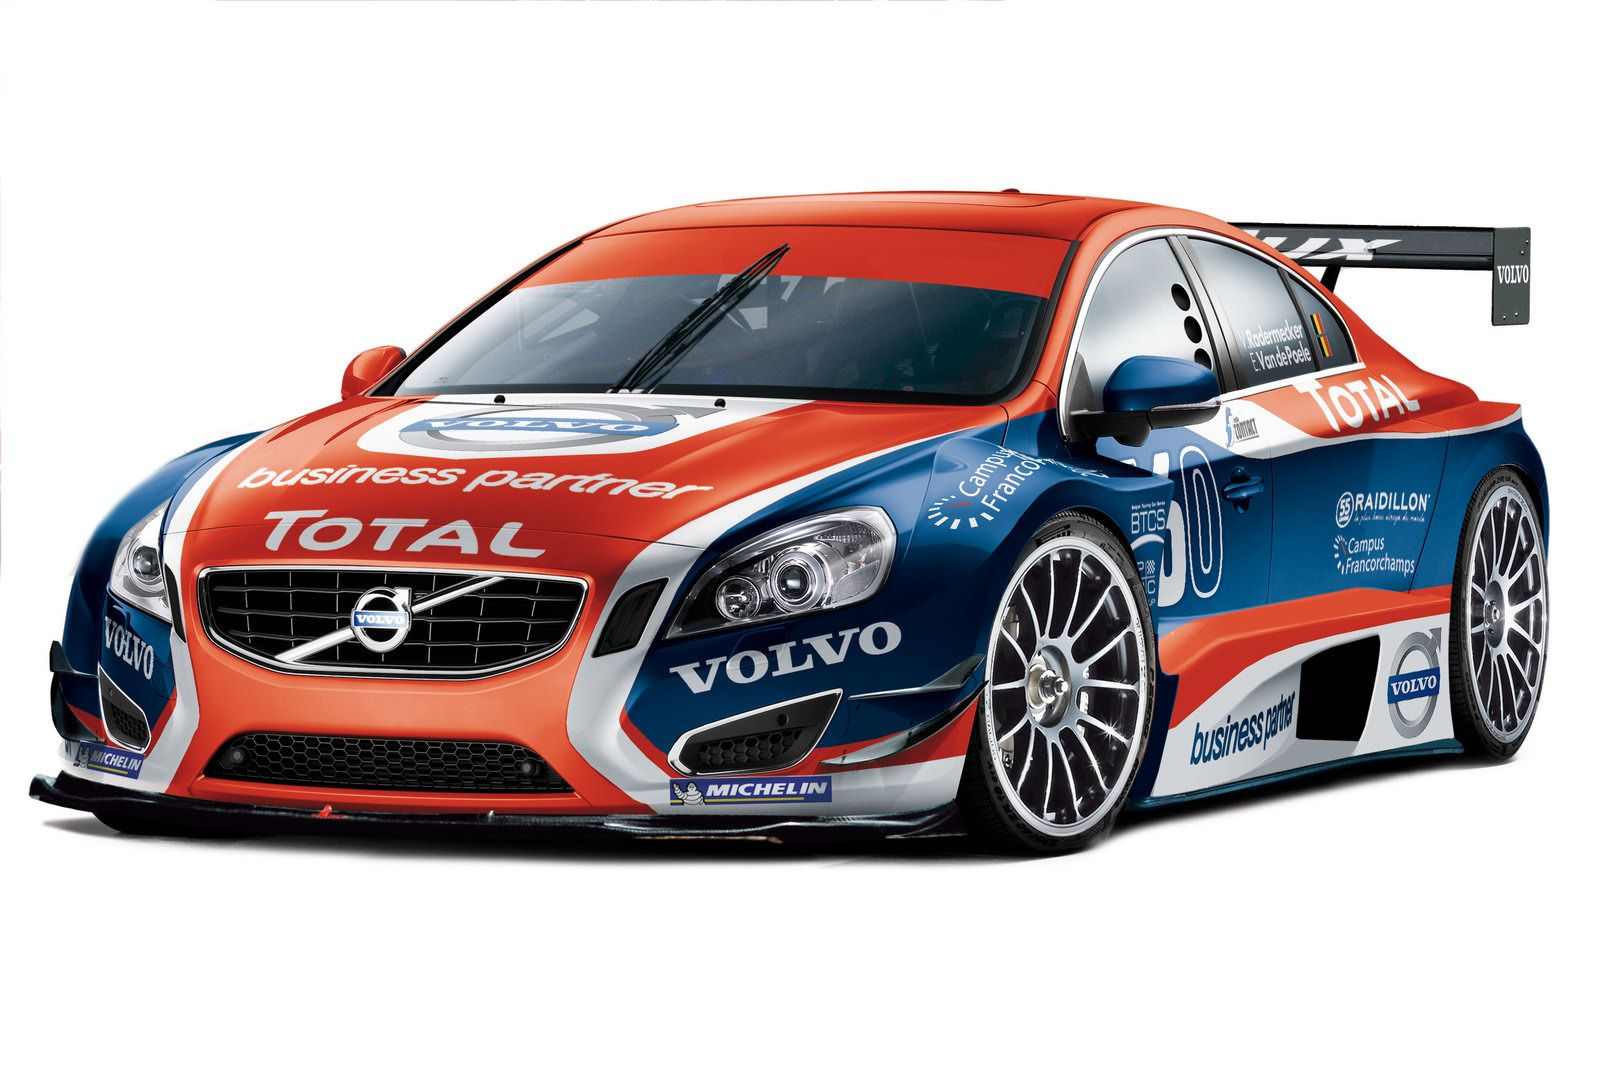 Image Detail For Volvo Race Car Euro Car Wraps